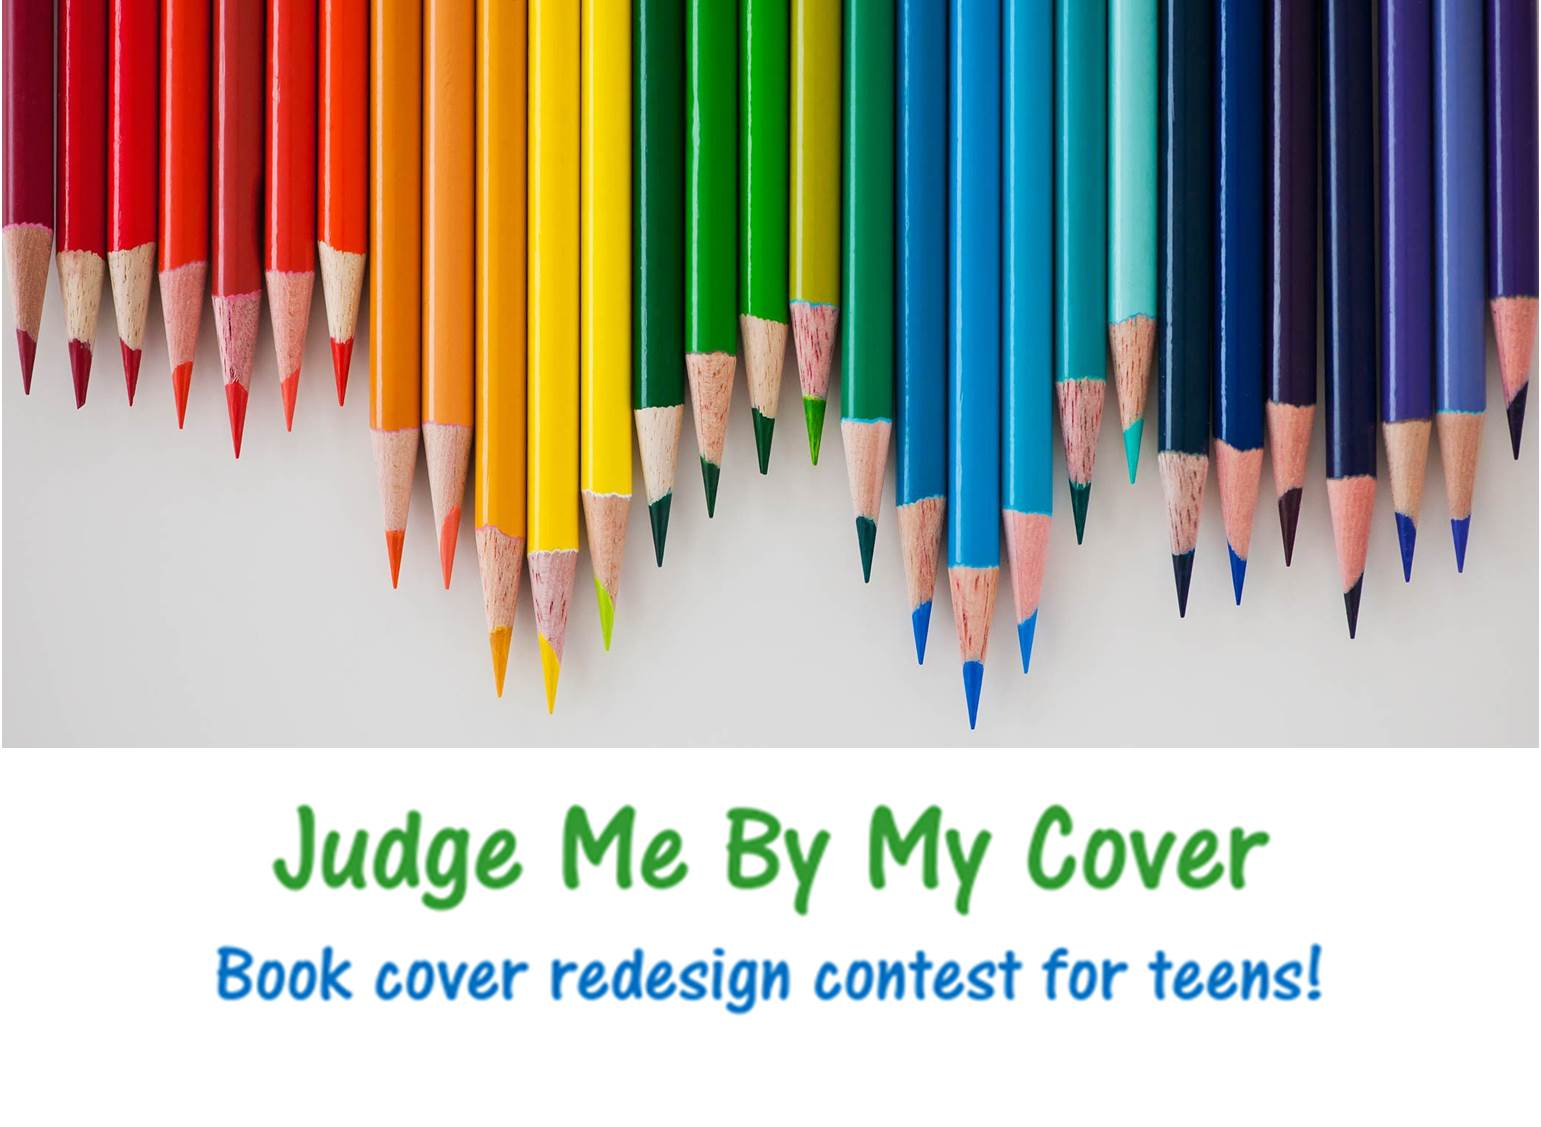 Teen Book Cover Re-Design Contest: Judge A Book By Its Cover